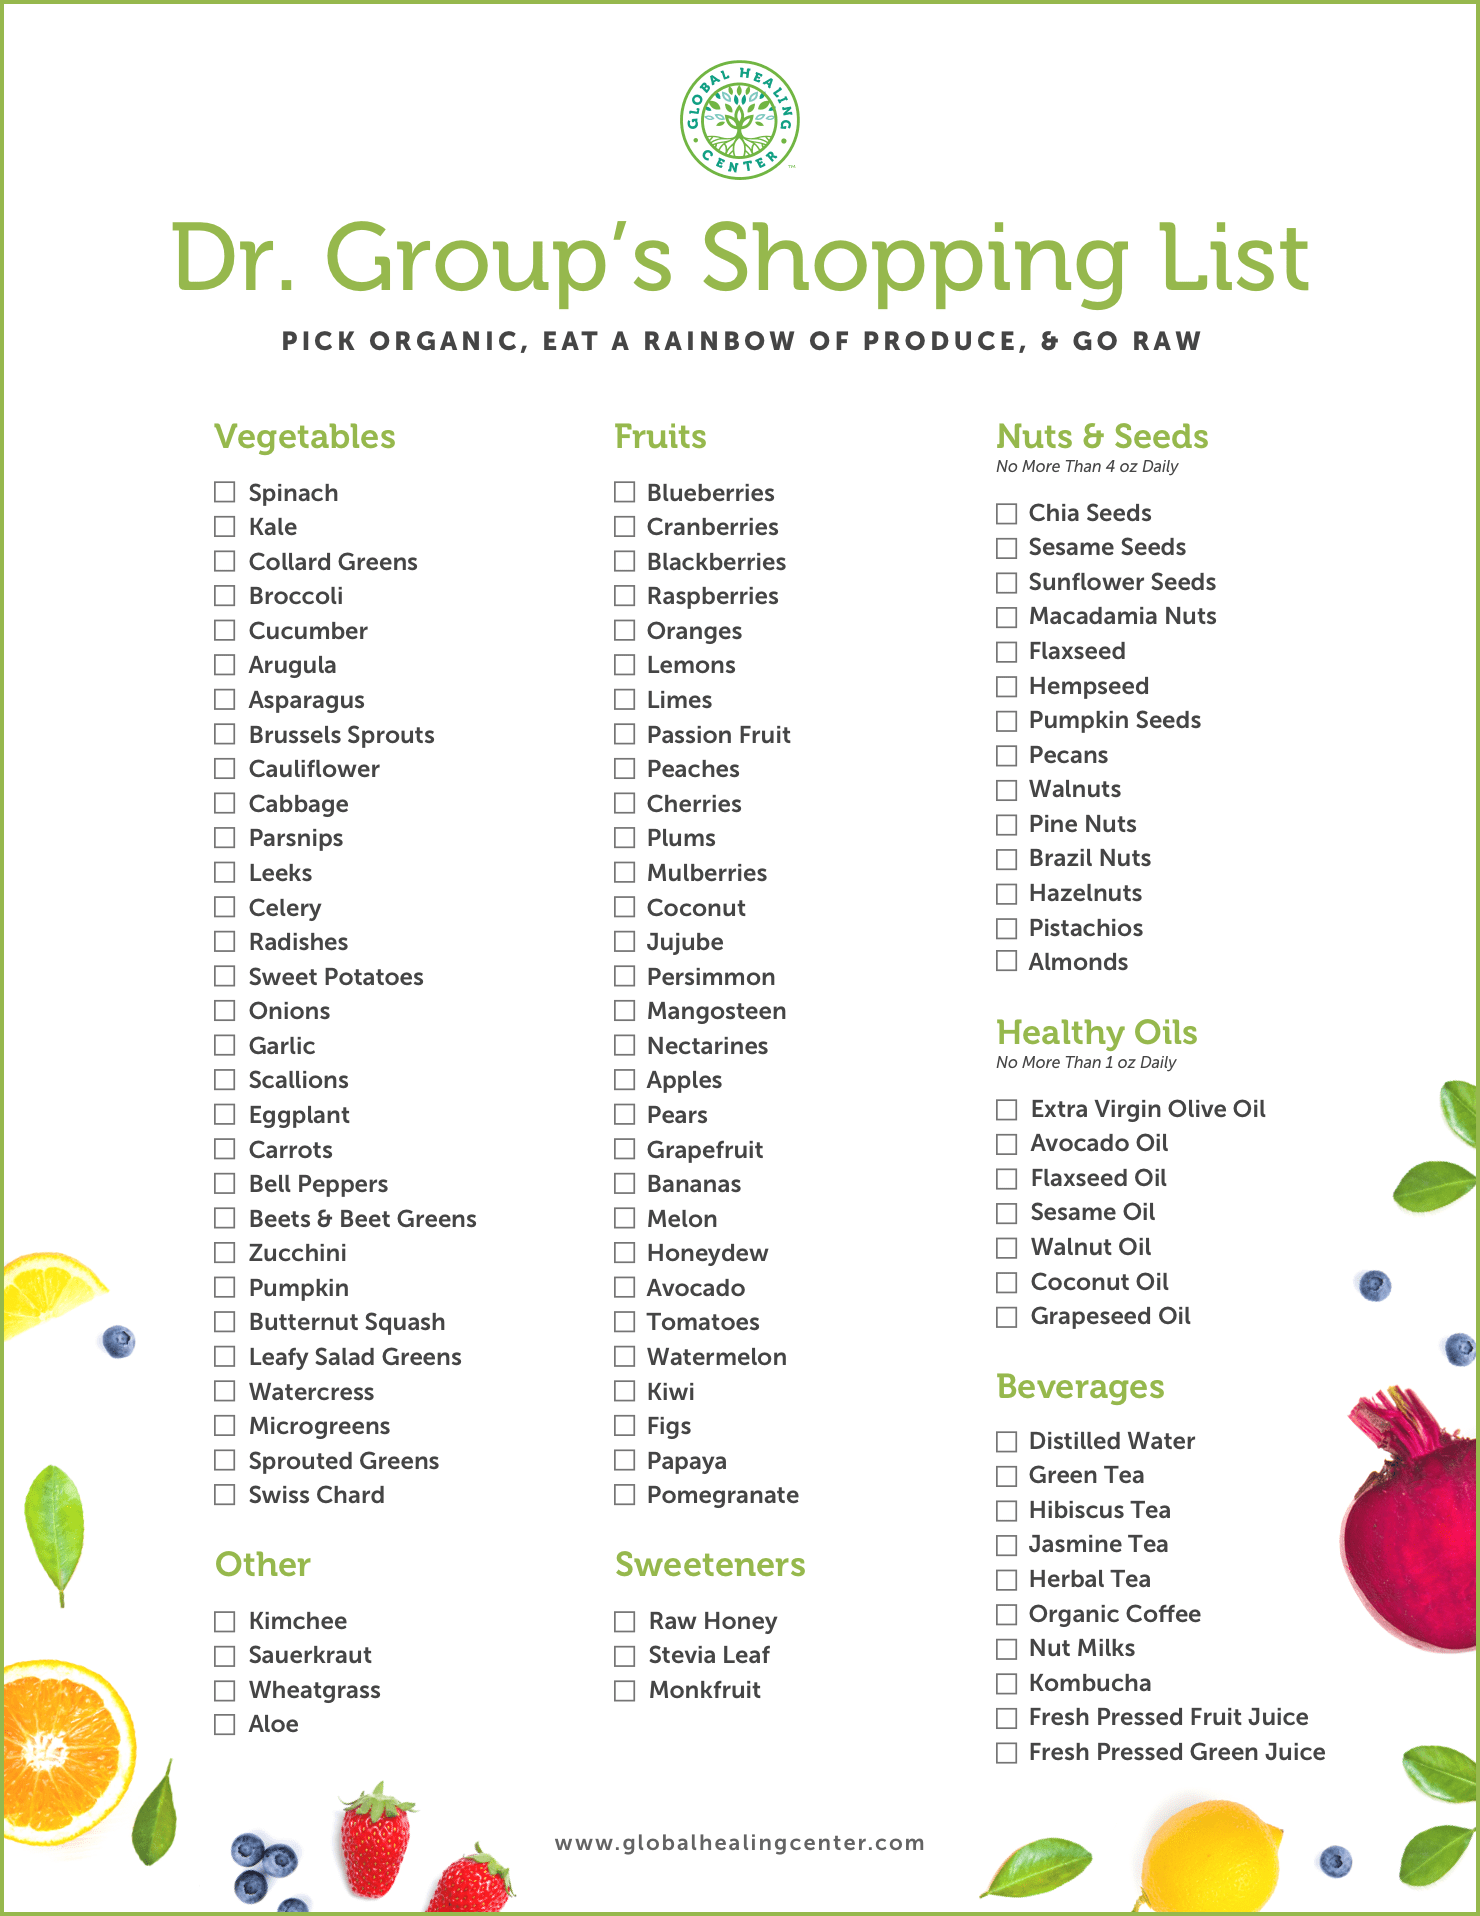 Browse through an array of Dr. Group's plant-based shopping list.